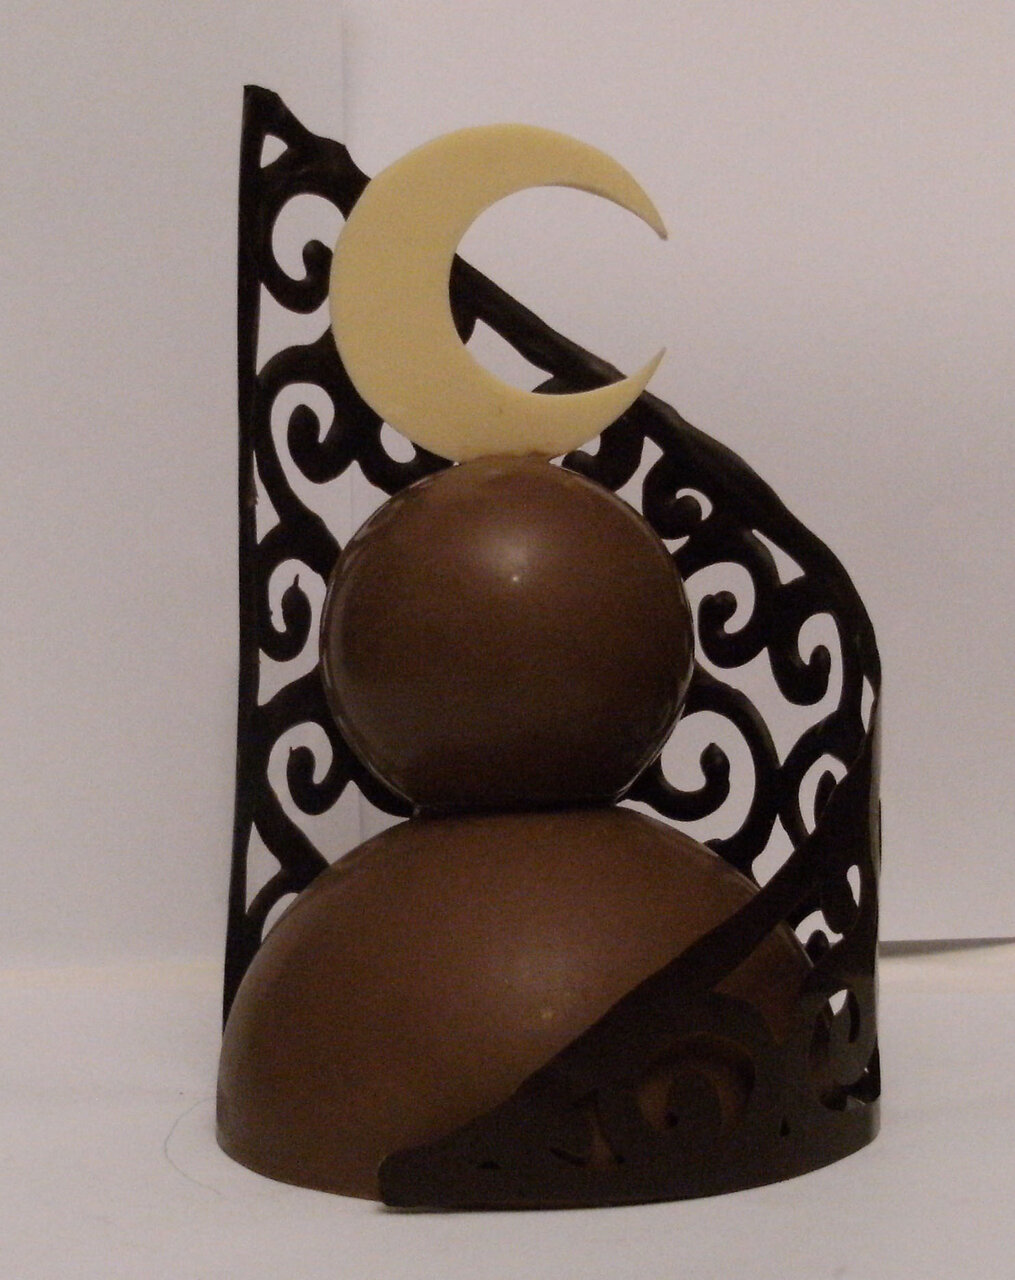 homemade-chocolate-sculpture-question-and-answer-interview-with-french-author-jade-corbeau-delices-nocturnes-vampires-choclatiers-susan-shiney